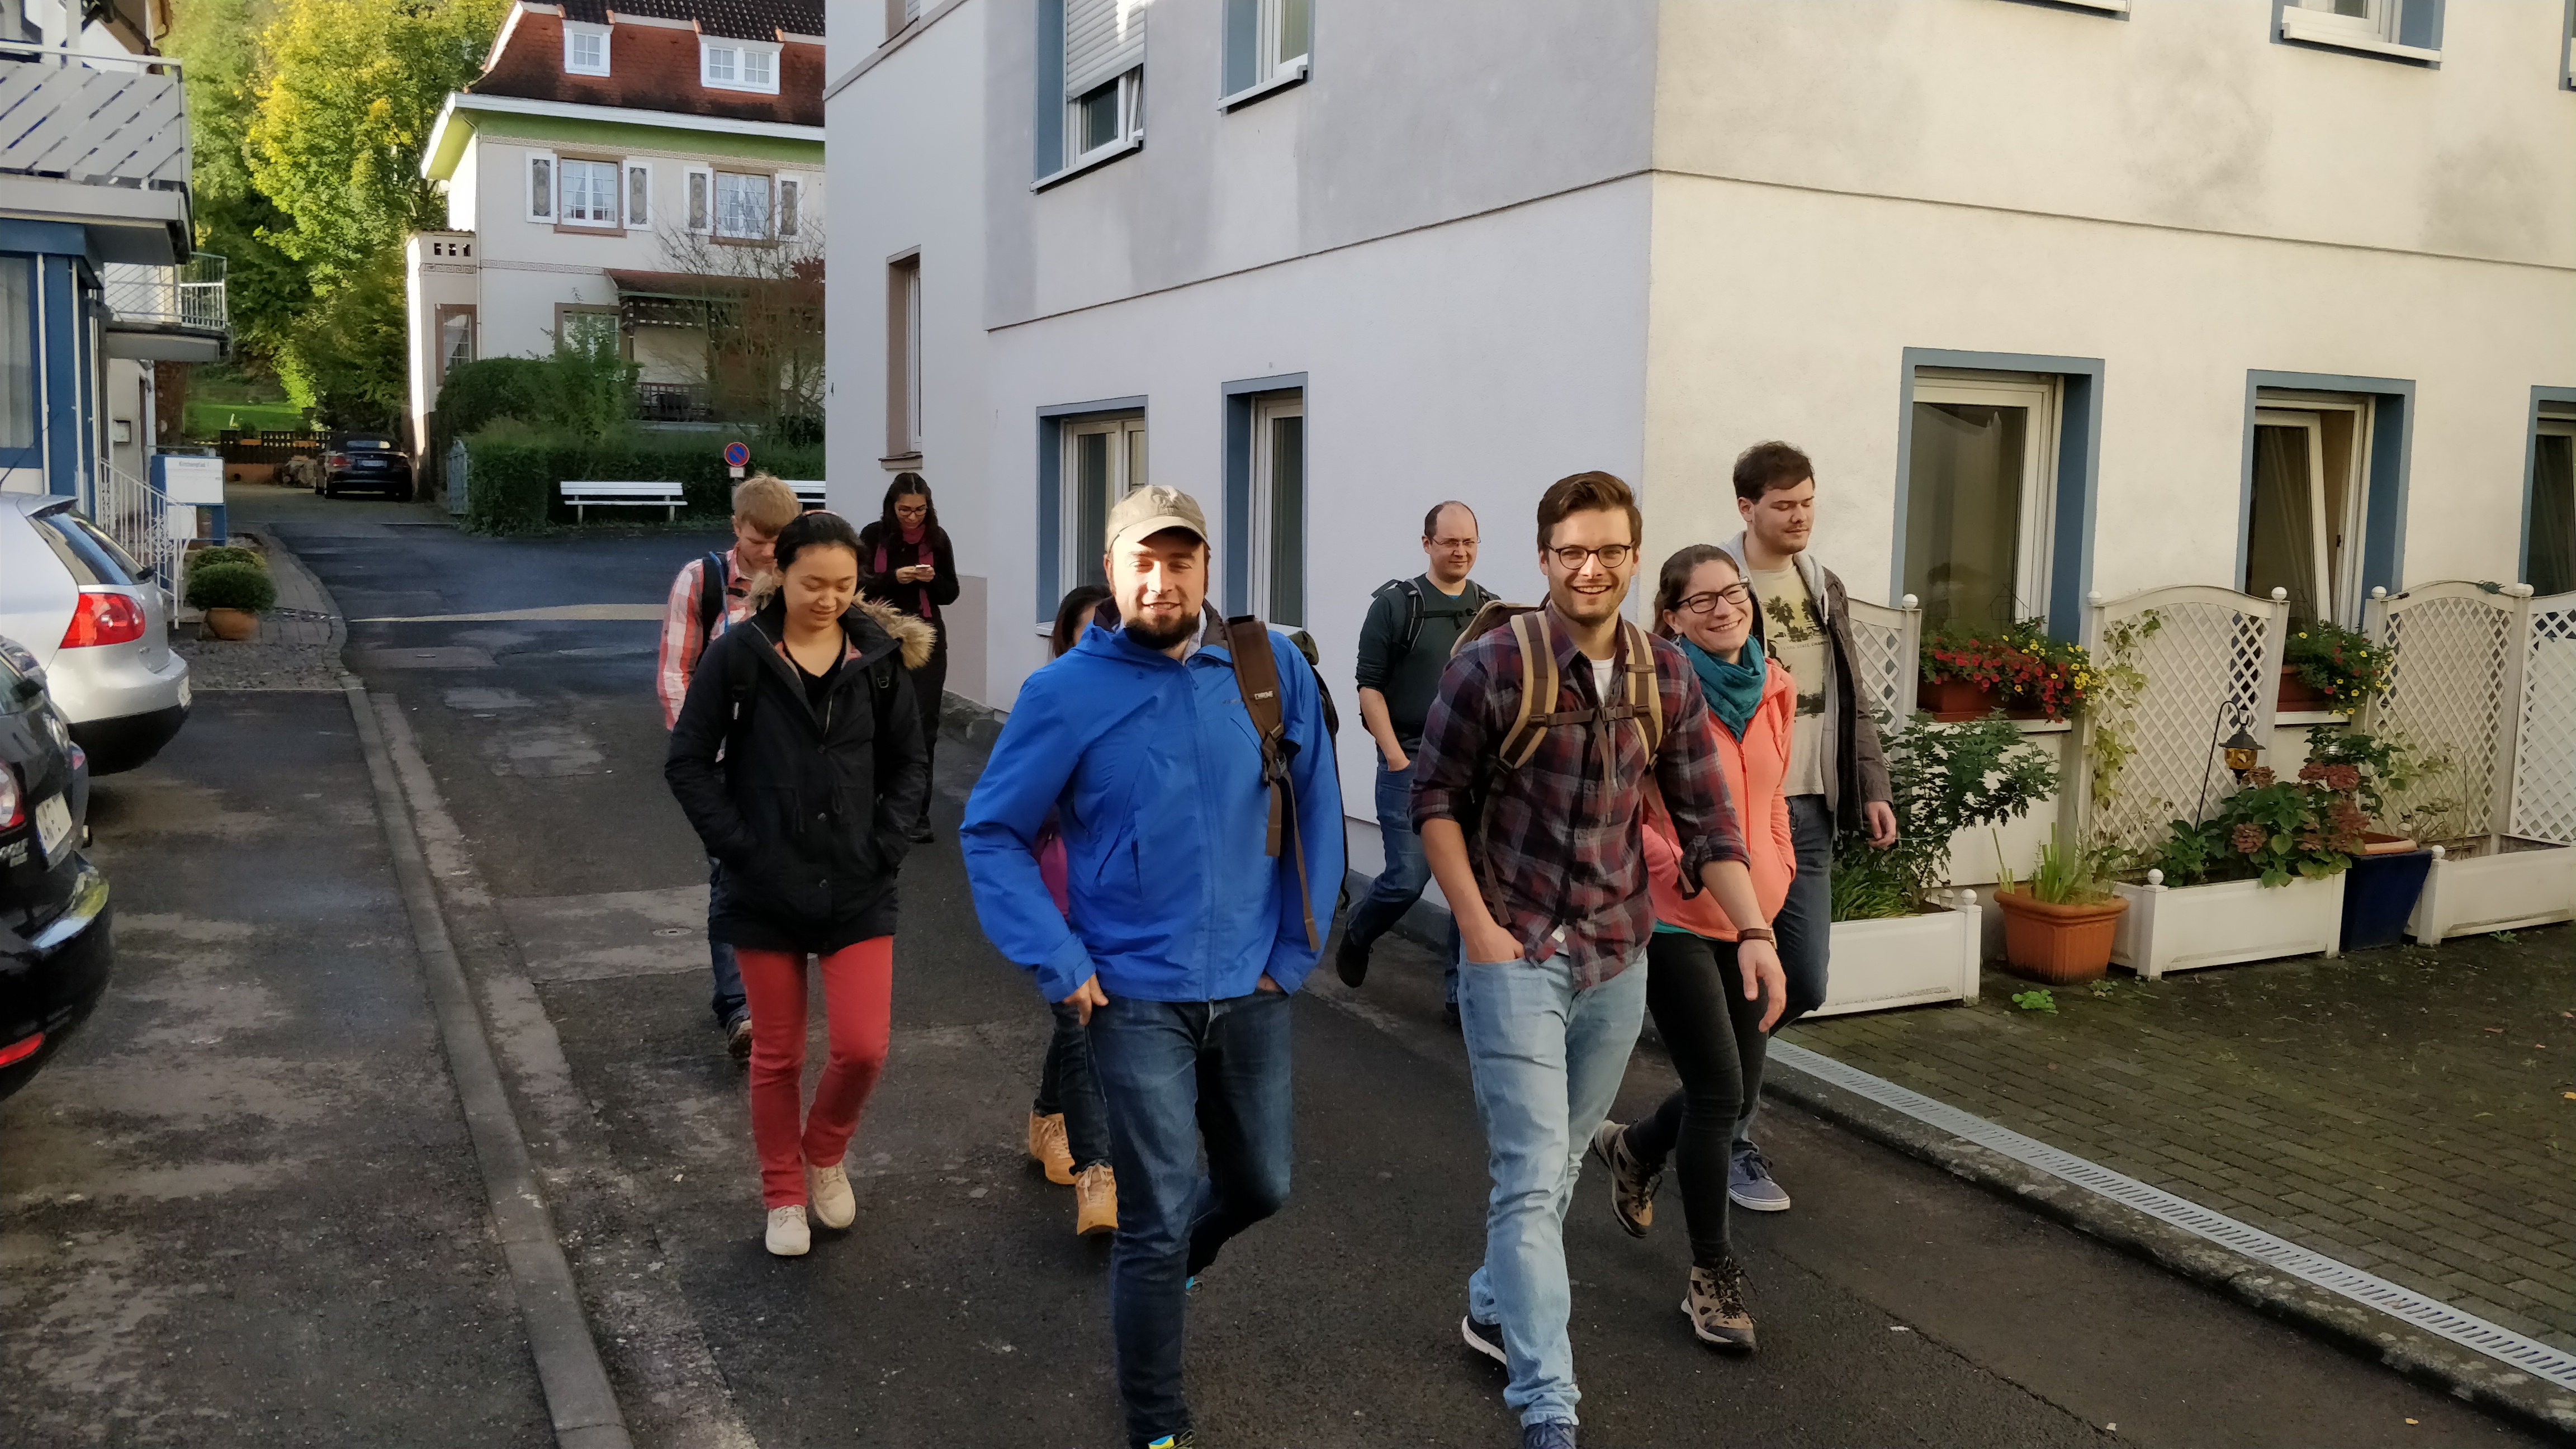 Leaving for a hike from Bad Neuenahr